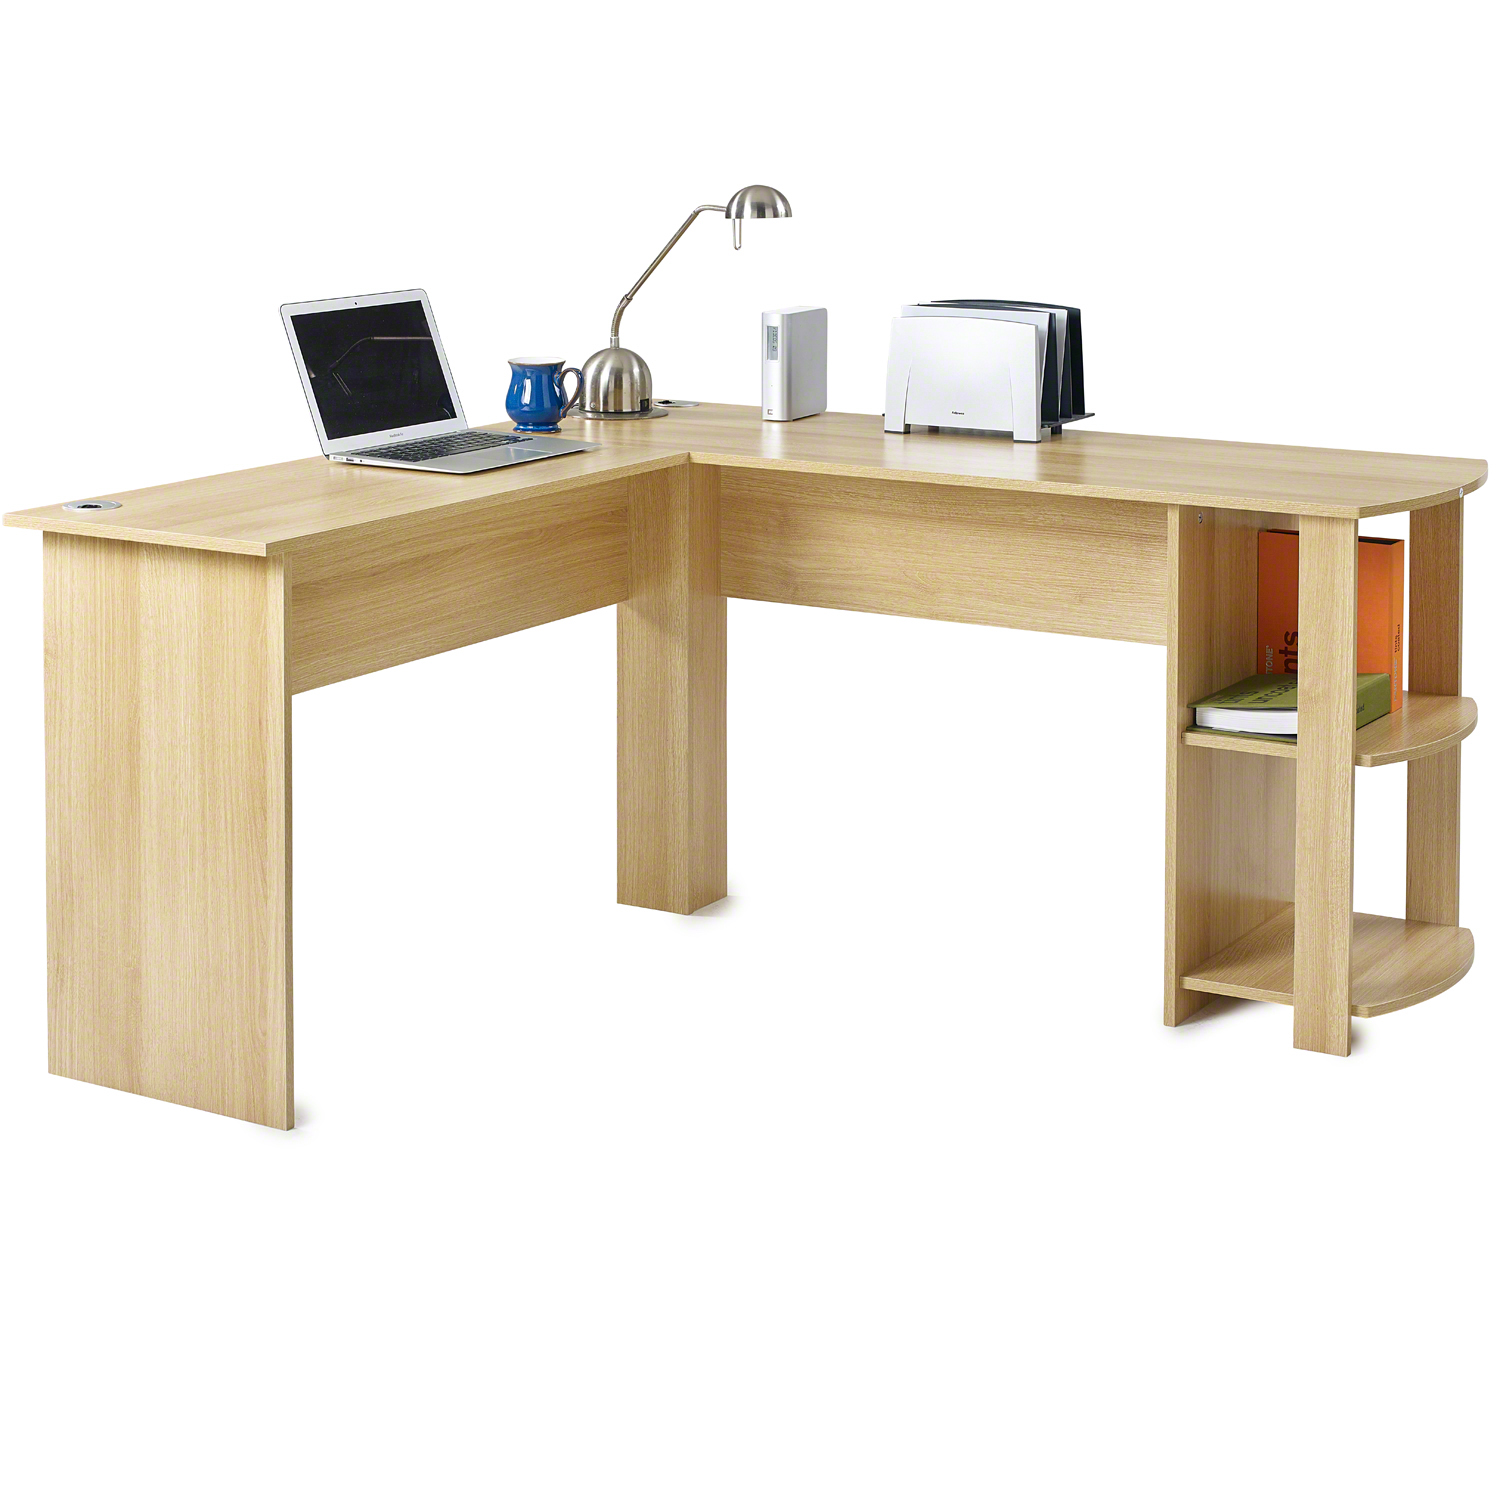 L Shaped Office Computer Desk Large Corner Pc Table With 2 Shelves